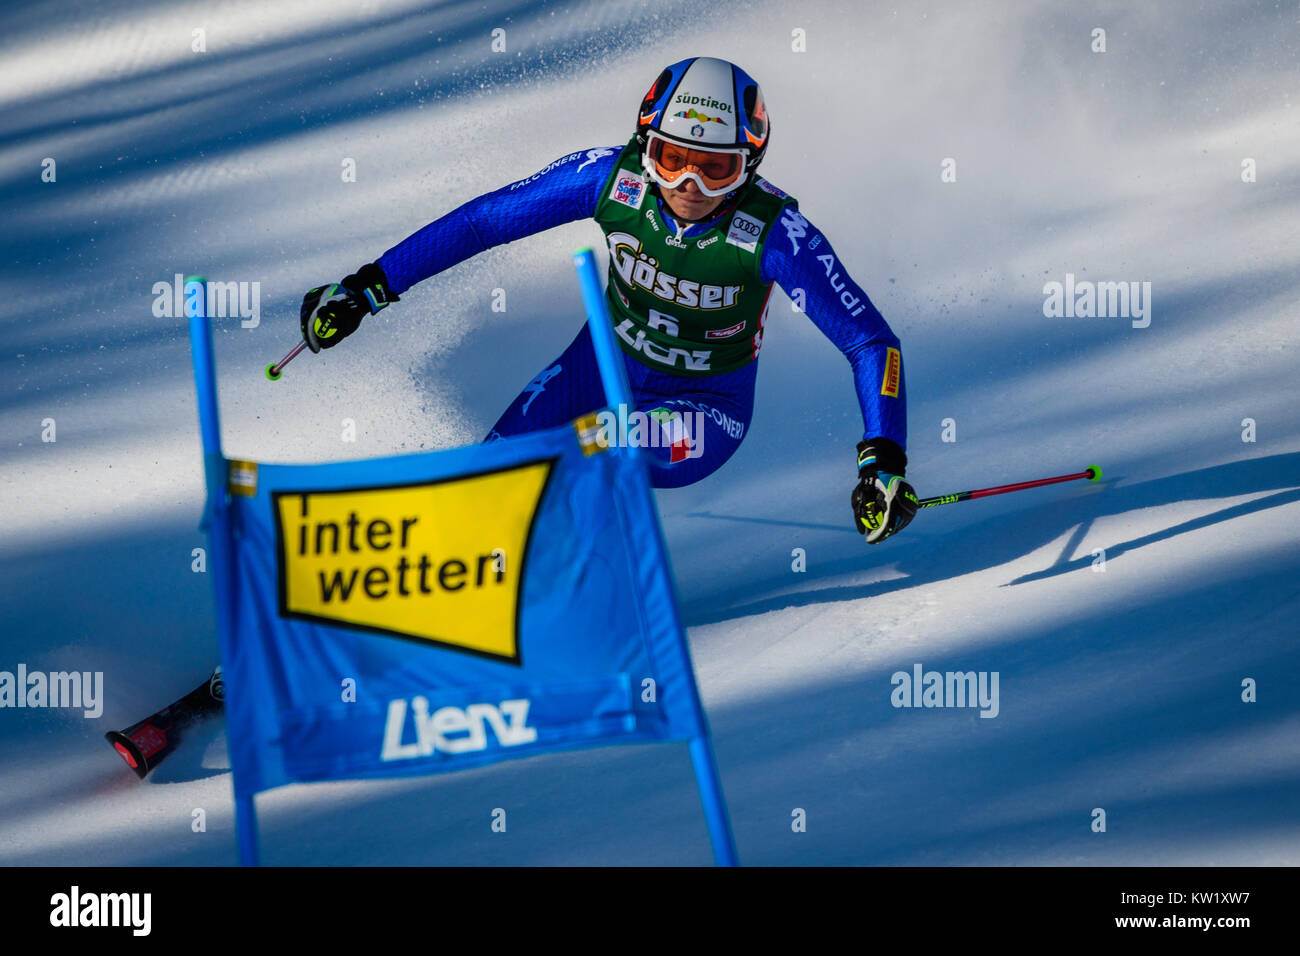 Lienz, Austria. 29th Dec, 2017. Manuela Moelgg of Italy competes during the FIS World Cup Ladies Giant Slalom race - Stock Image